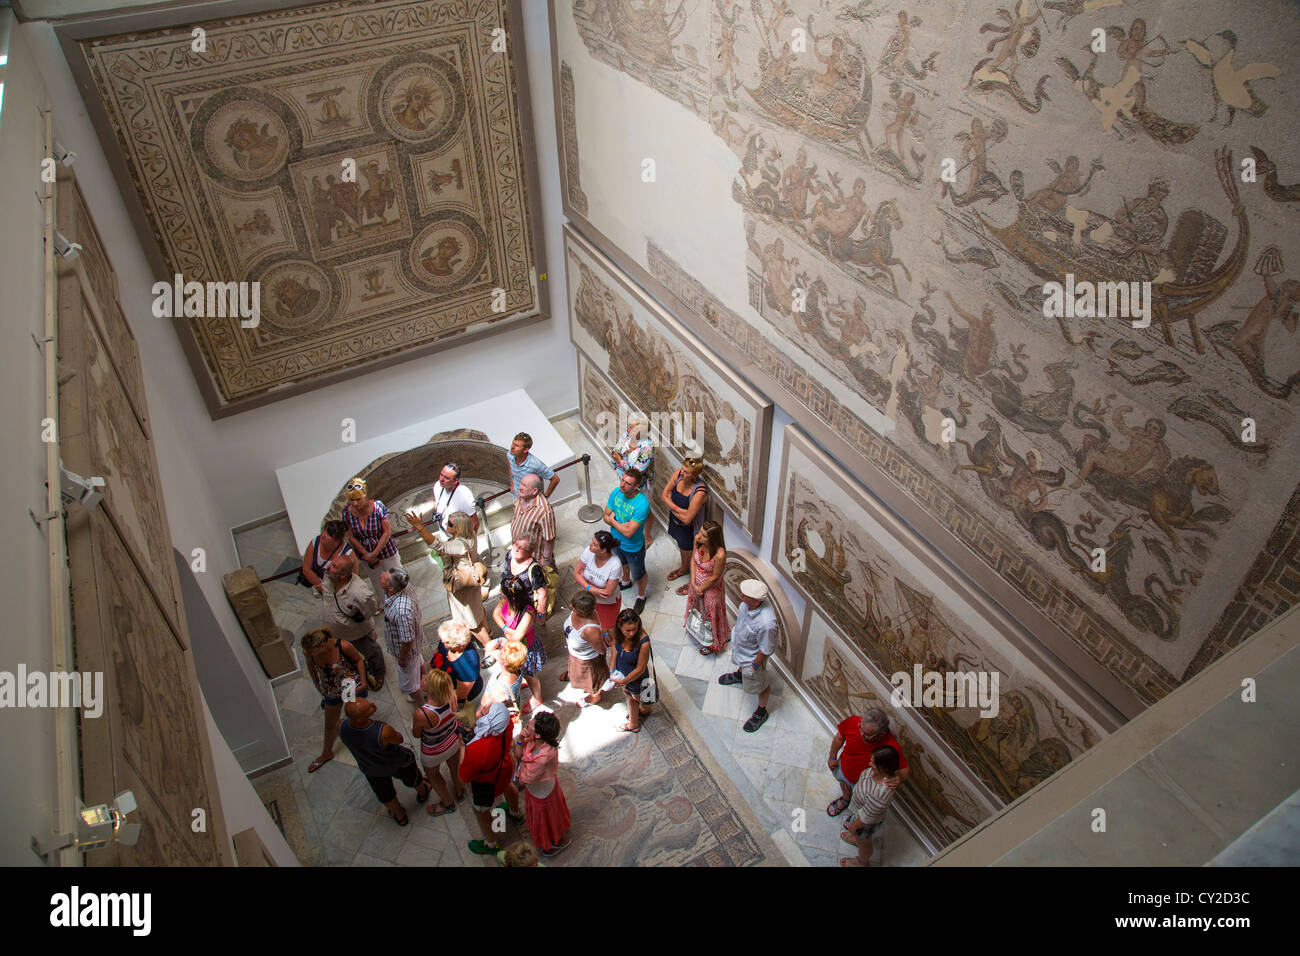 The Bardo Museum in Tunis Tunisia Stock Photo